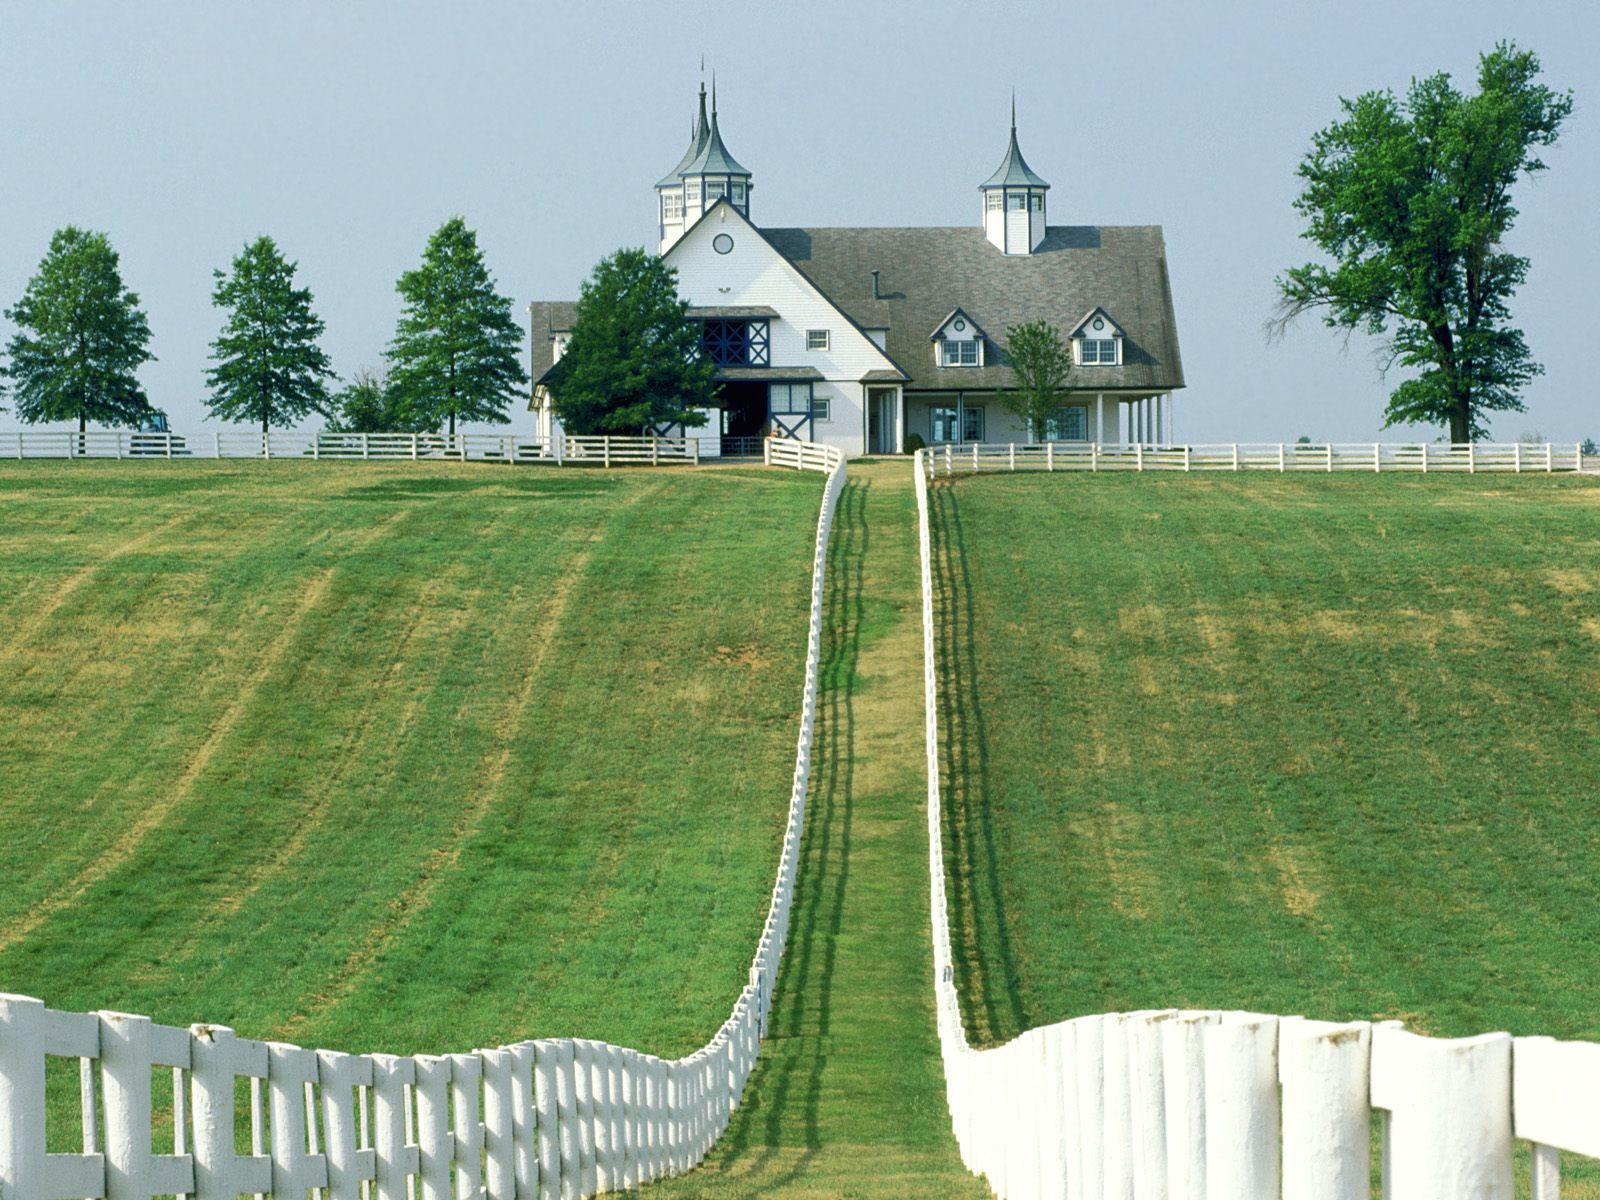 Manchester farm lexington Kentucky HD Wallpaper